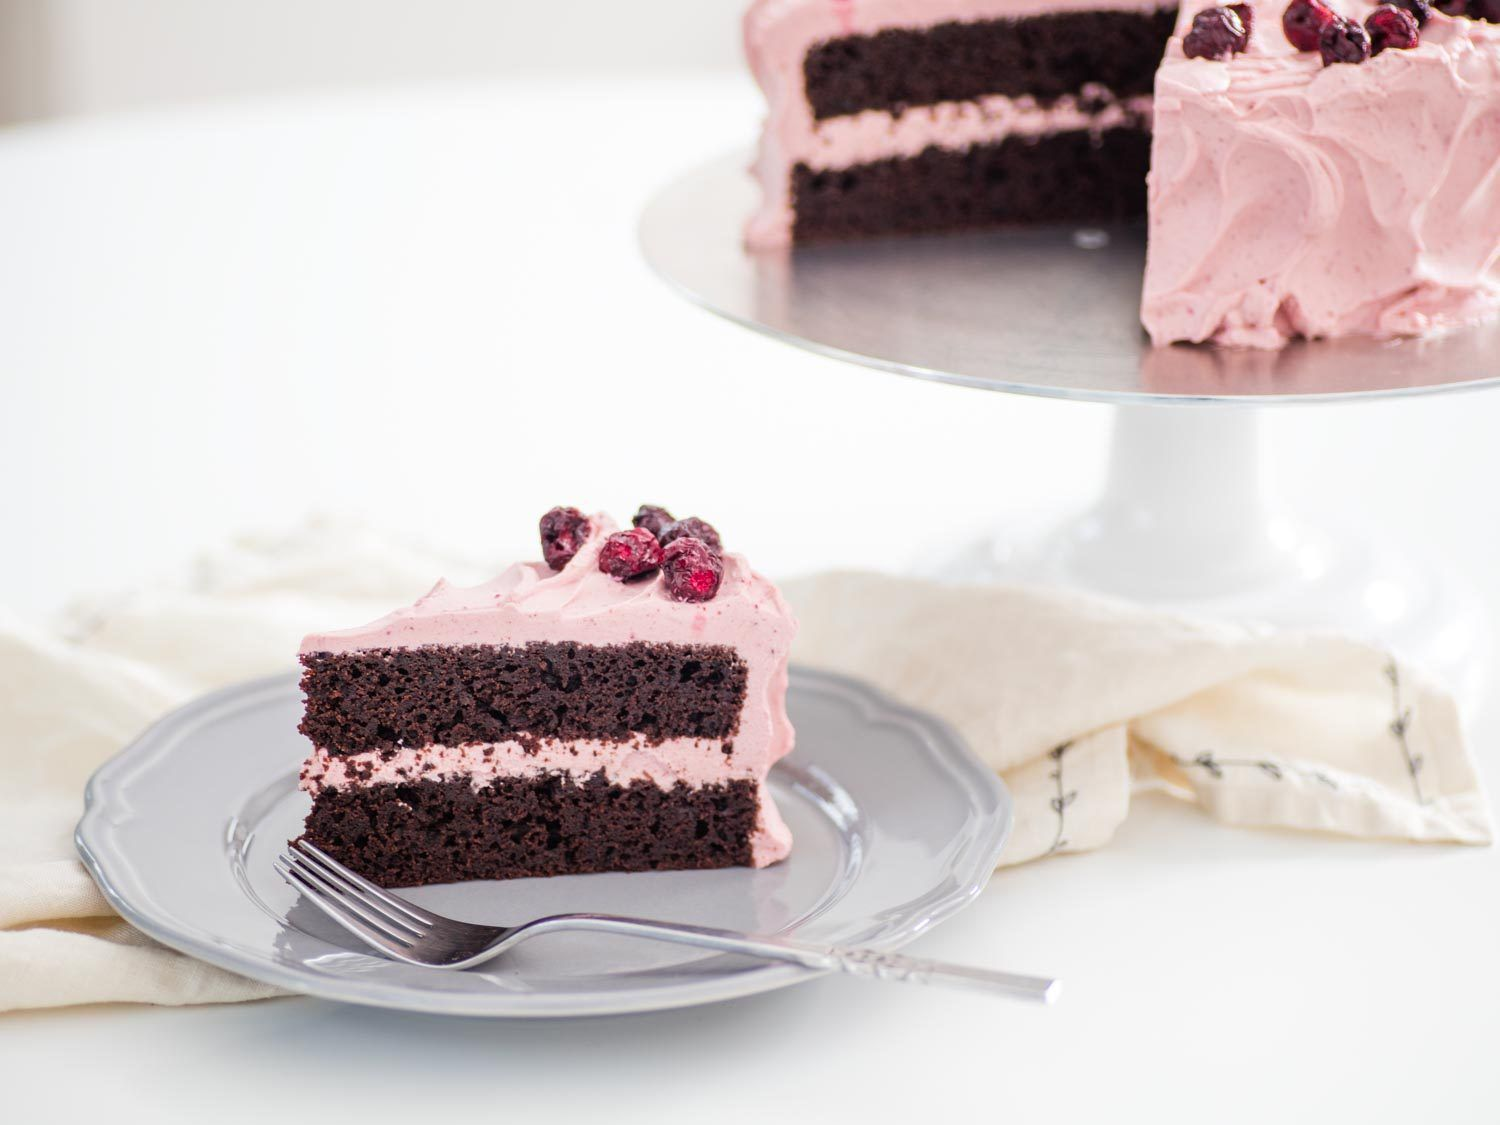 a slice of a two-layer chocolate cake with pale pink cherry whipped cream on a plate, with the remaining cake on a stand in the background